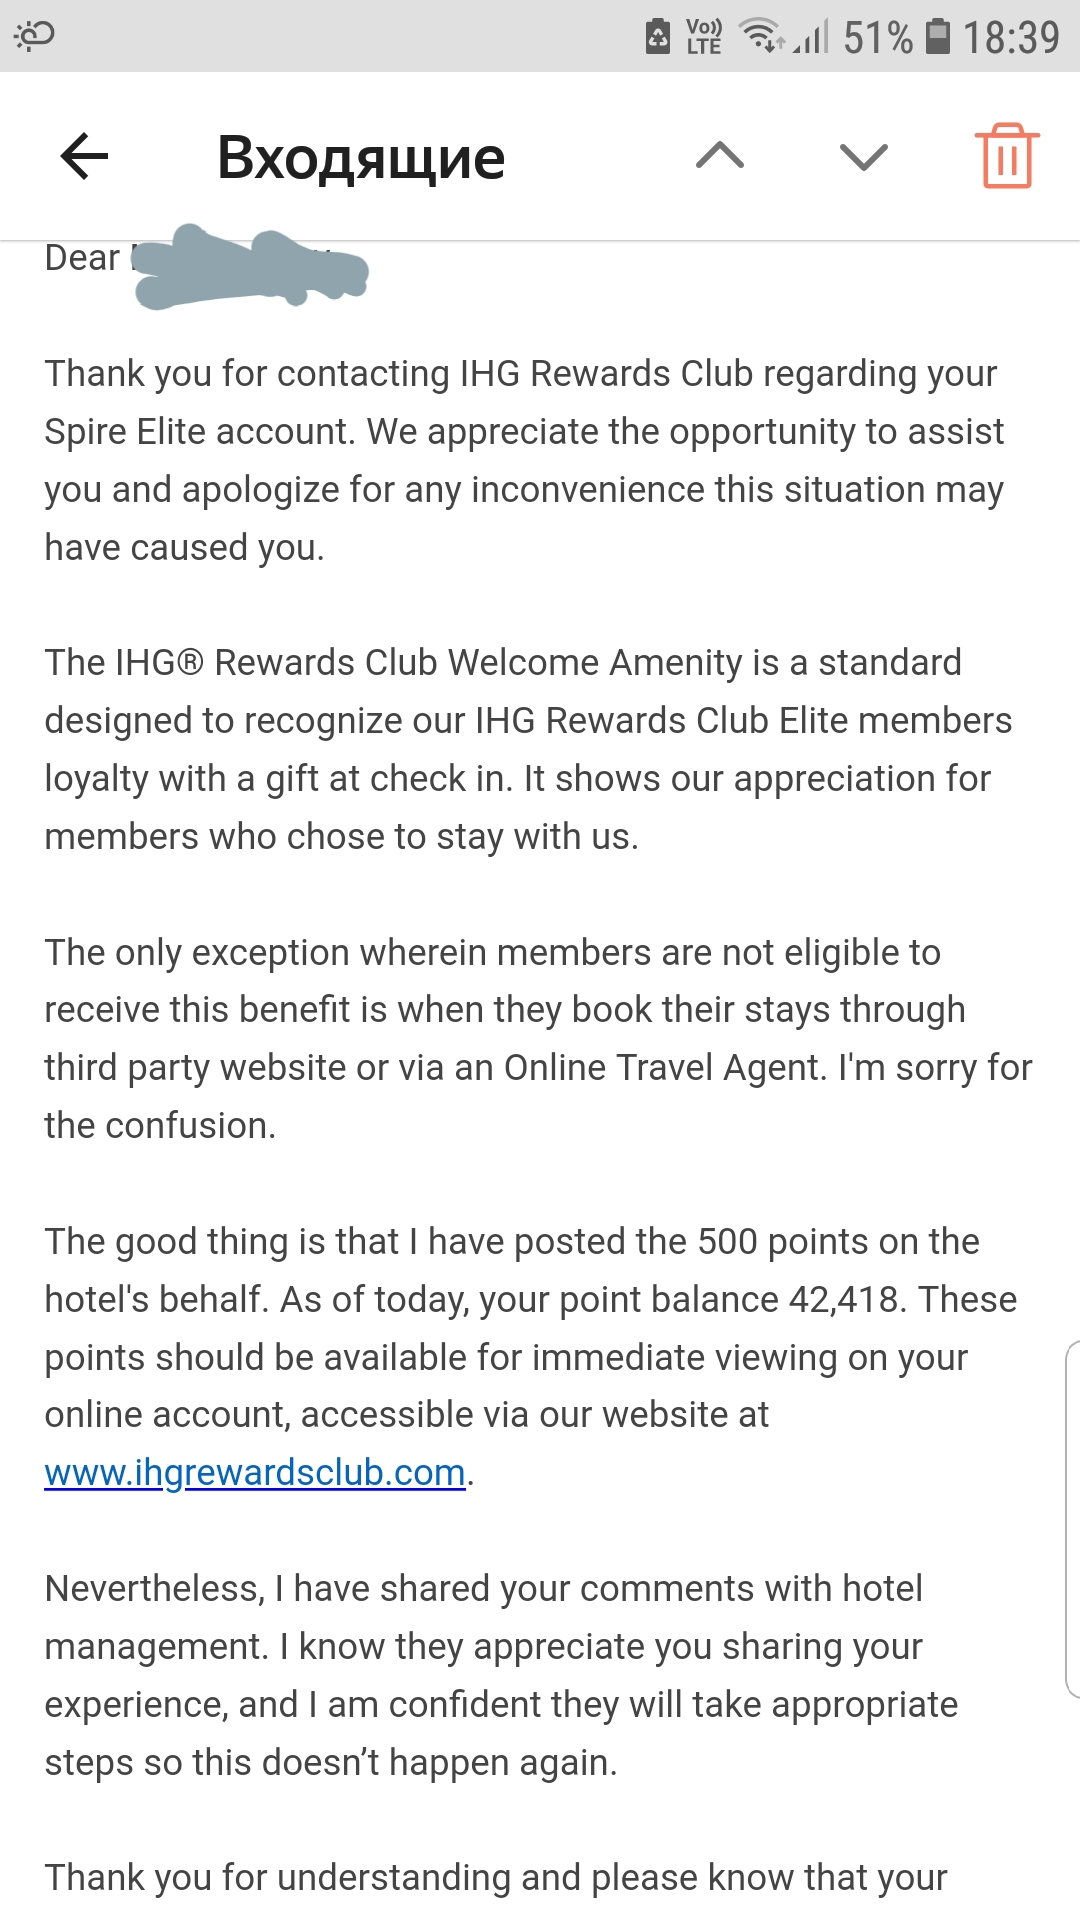 Should I have received recognition/welcome amenity/room